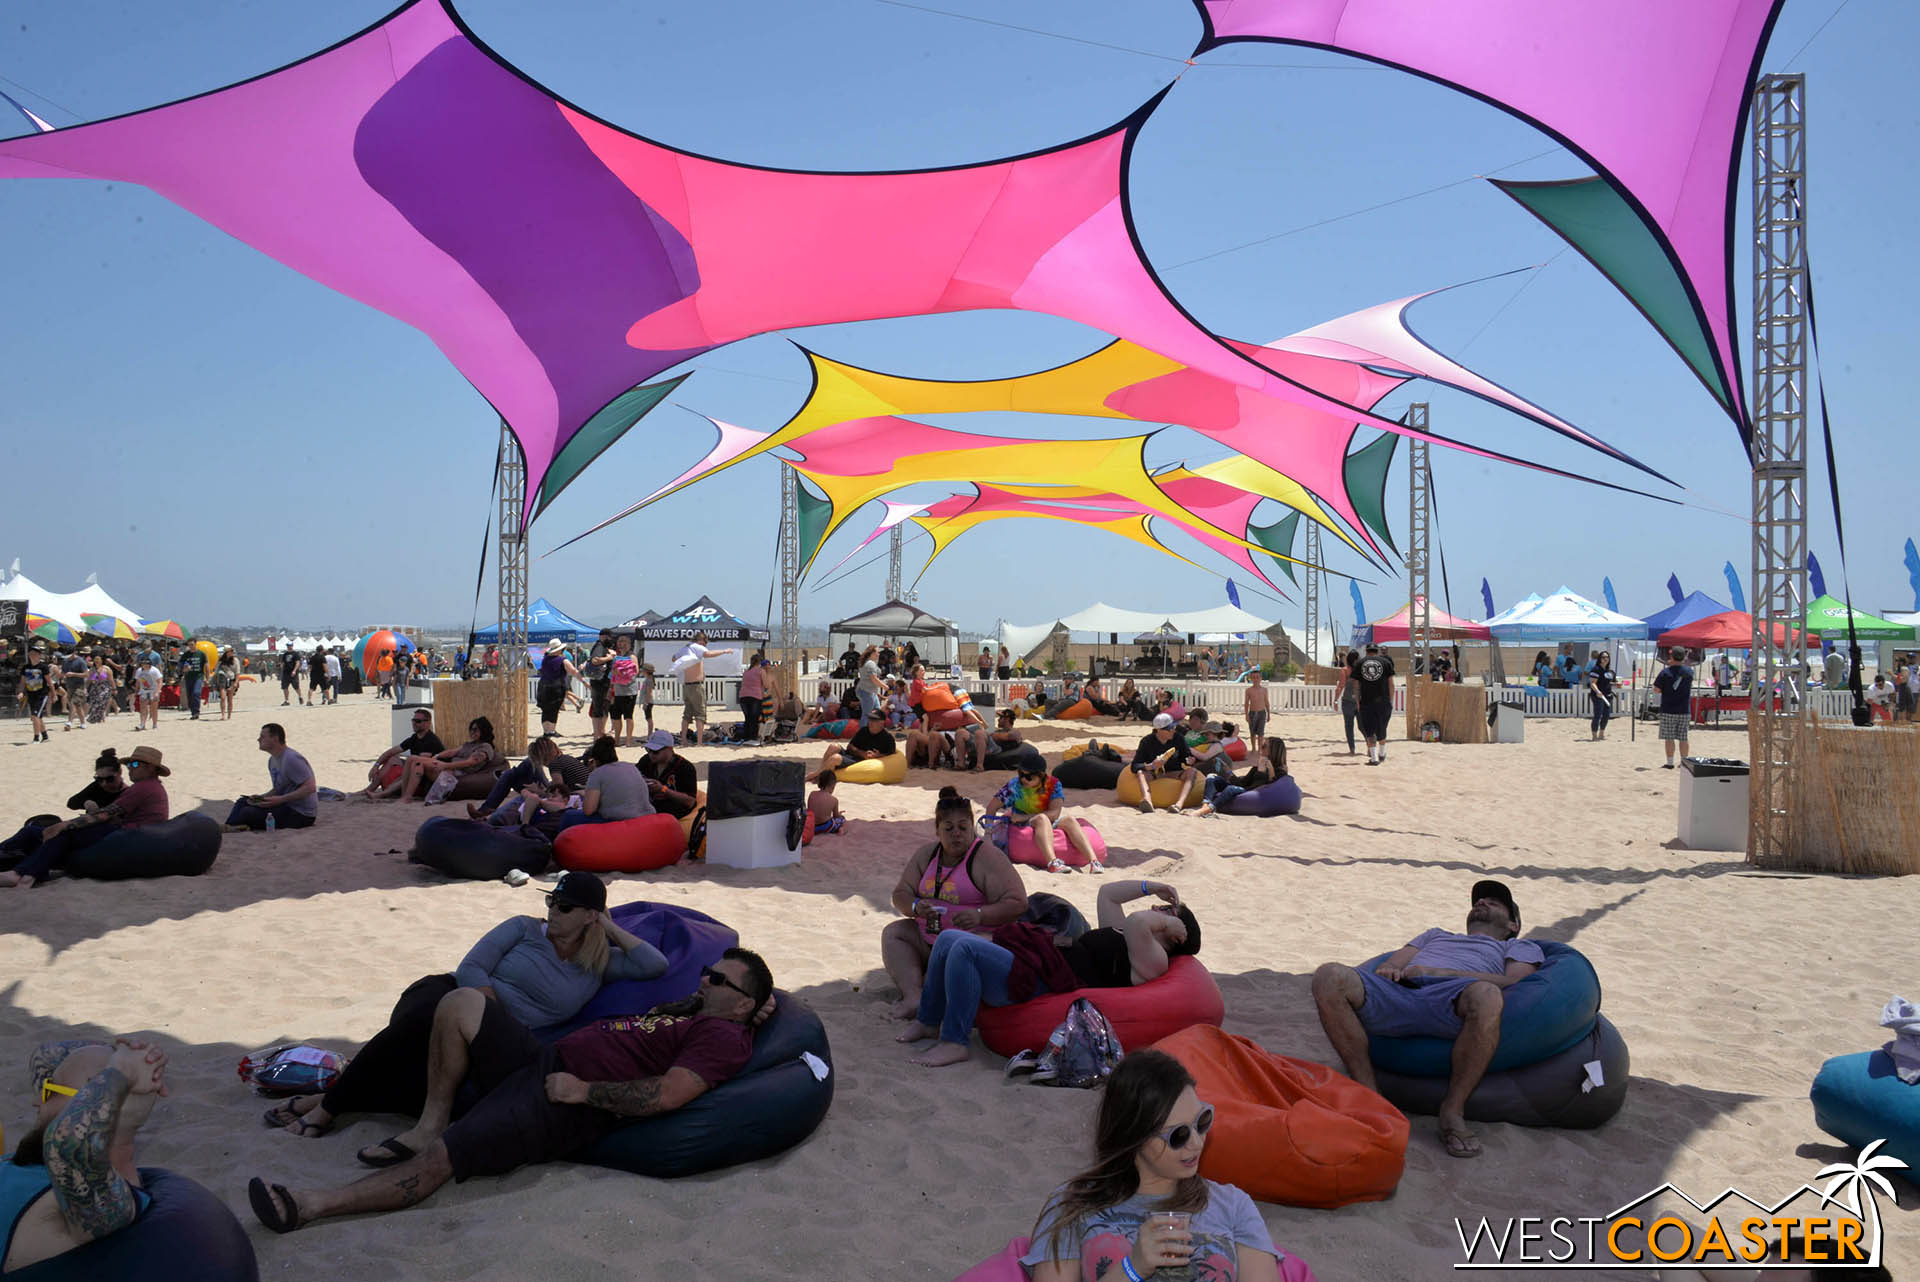 Some more would have been welcome, as people tended to cluster around the shade during the peak afternoon hours.